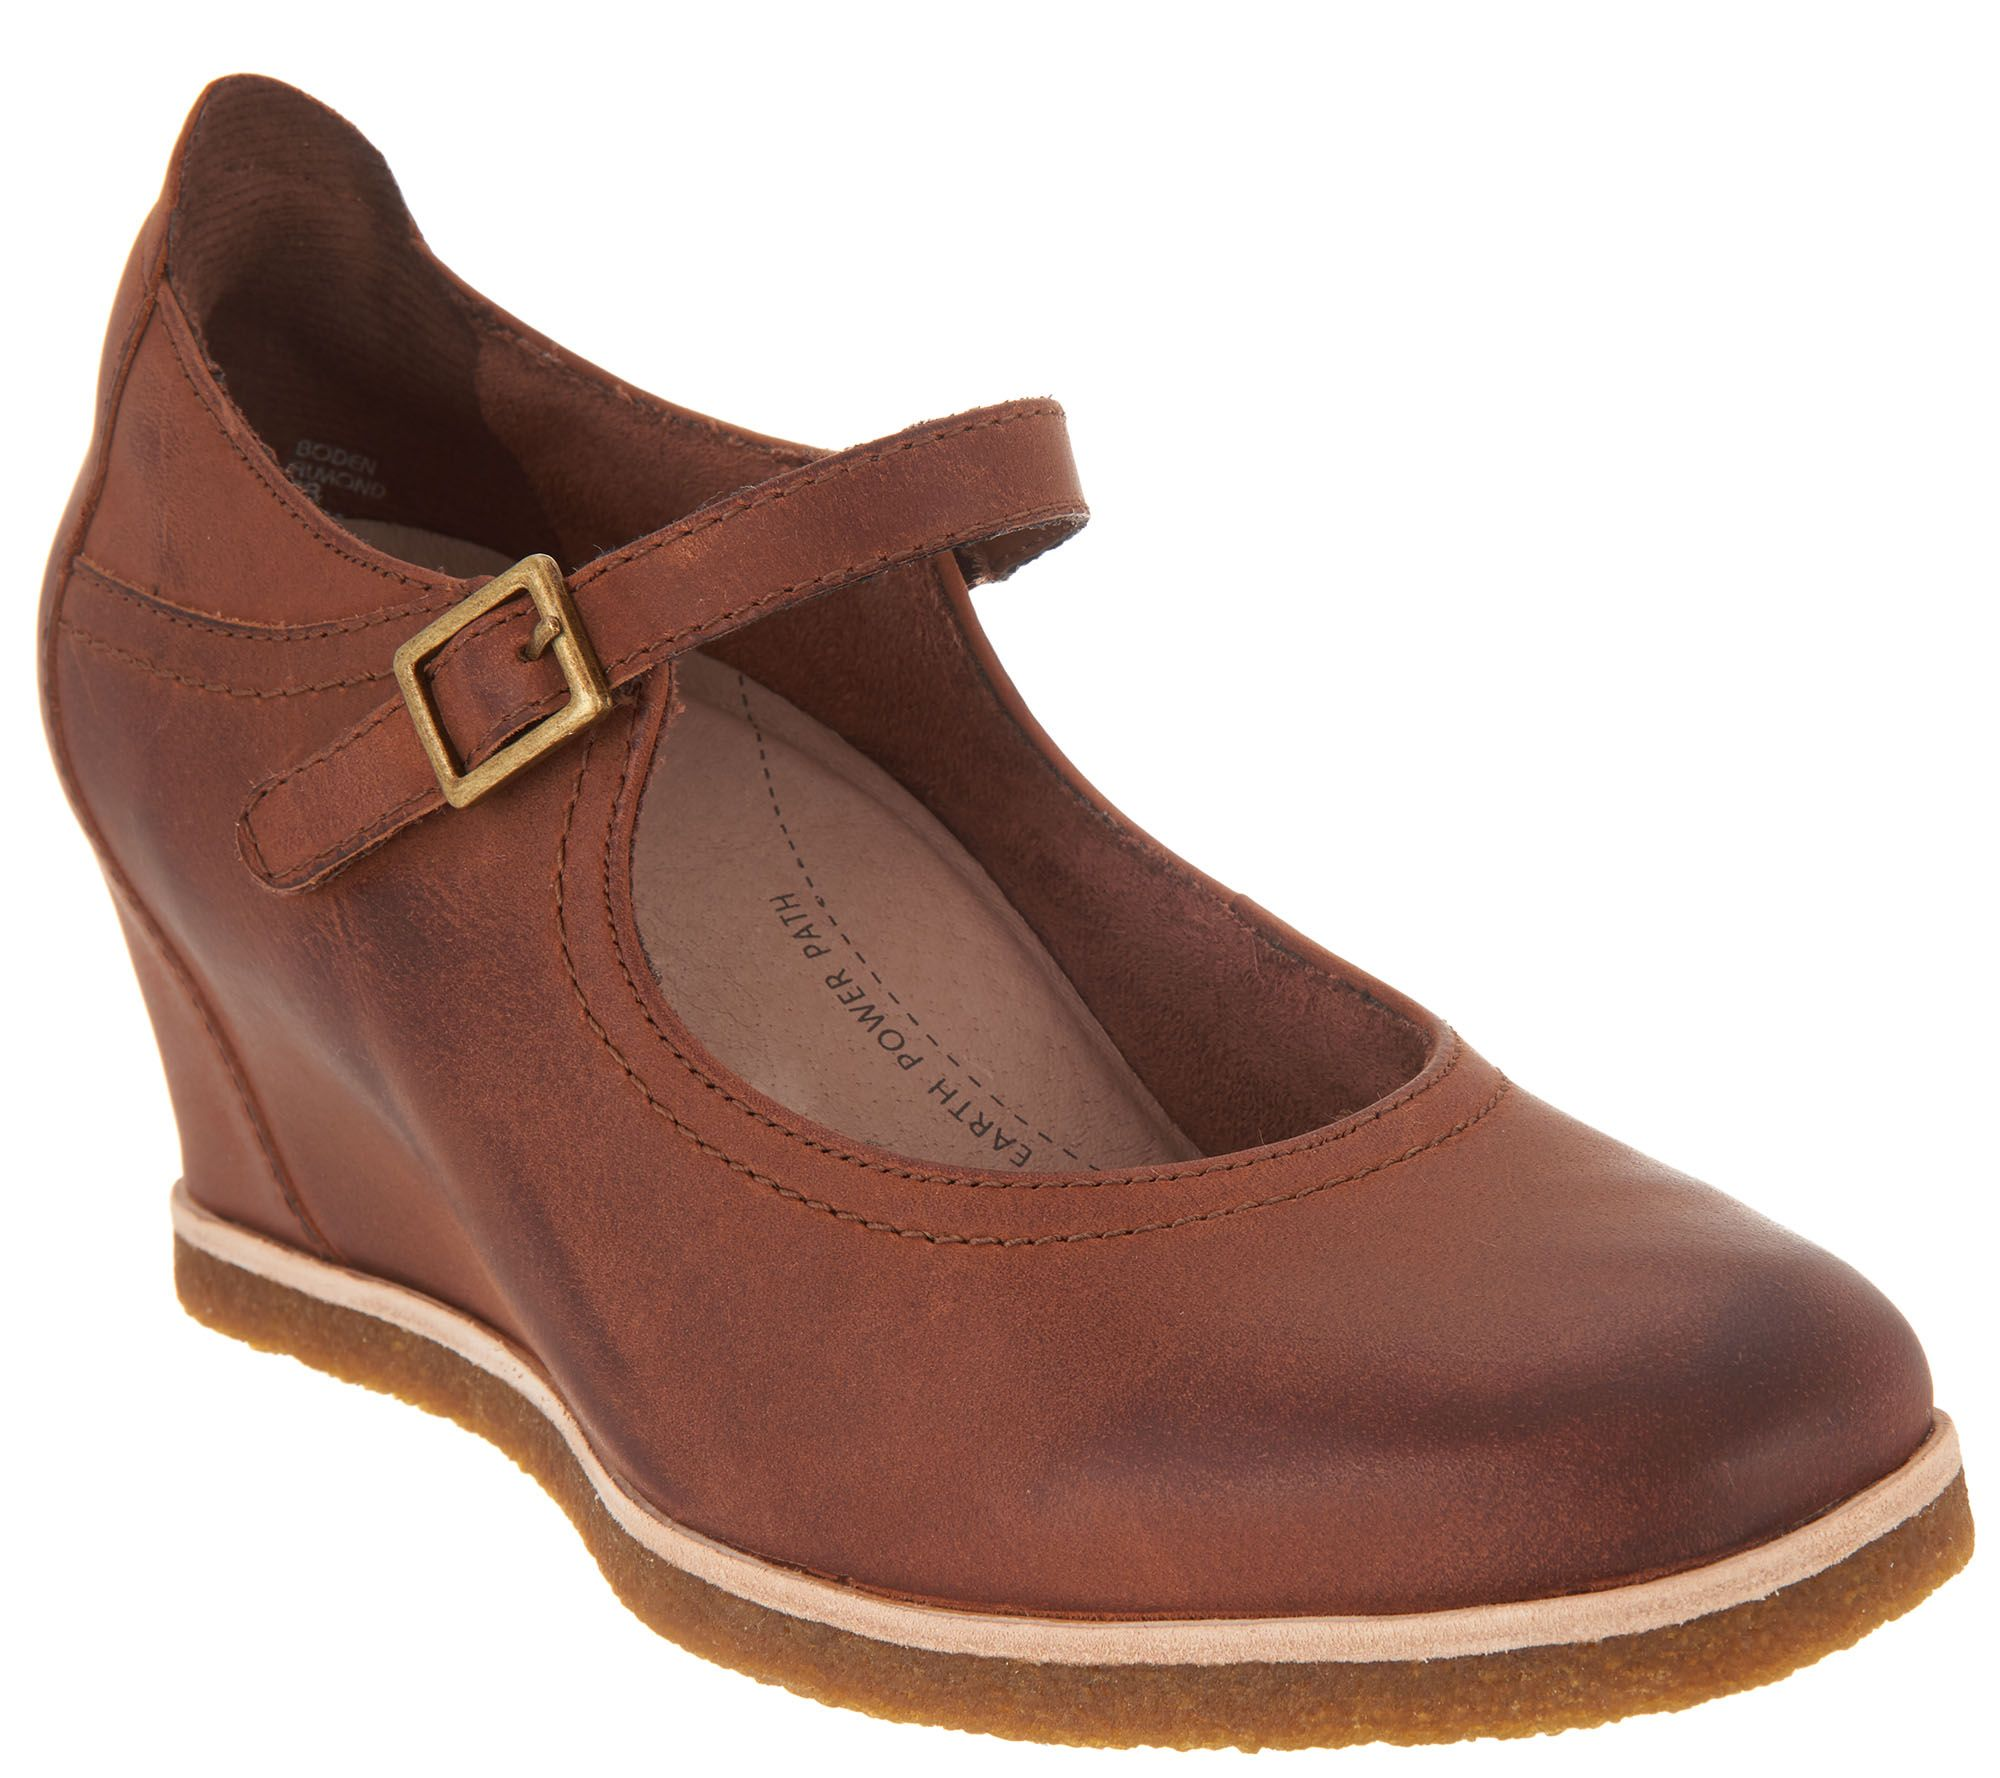 efffbac055c2 Earth Nubuck Wedge Mary Janes - Boden - Page 1 — QVC.com